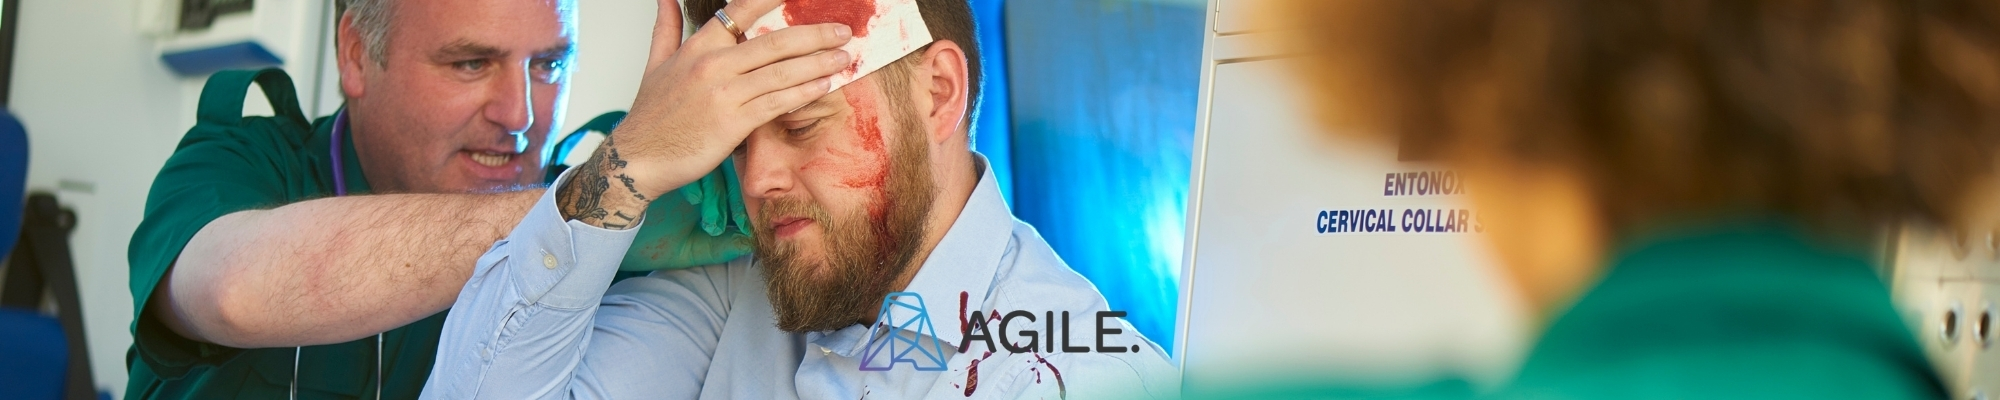 An Agile approach to Casualty Insurance